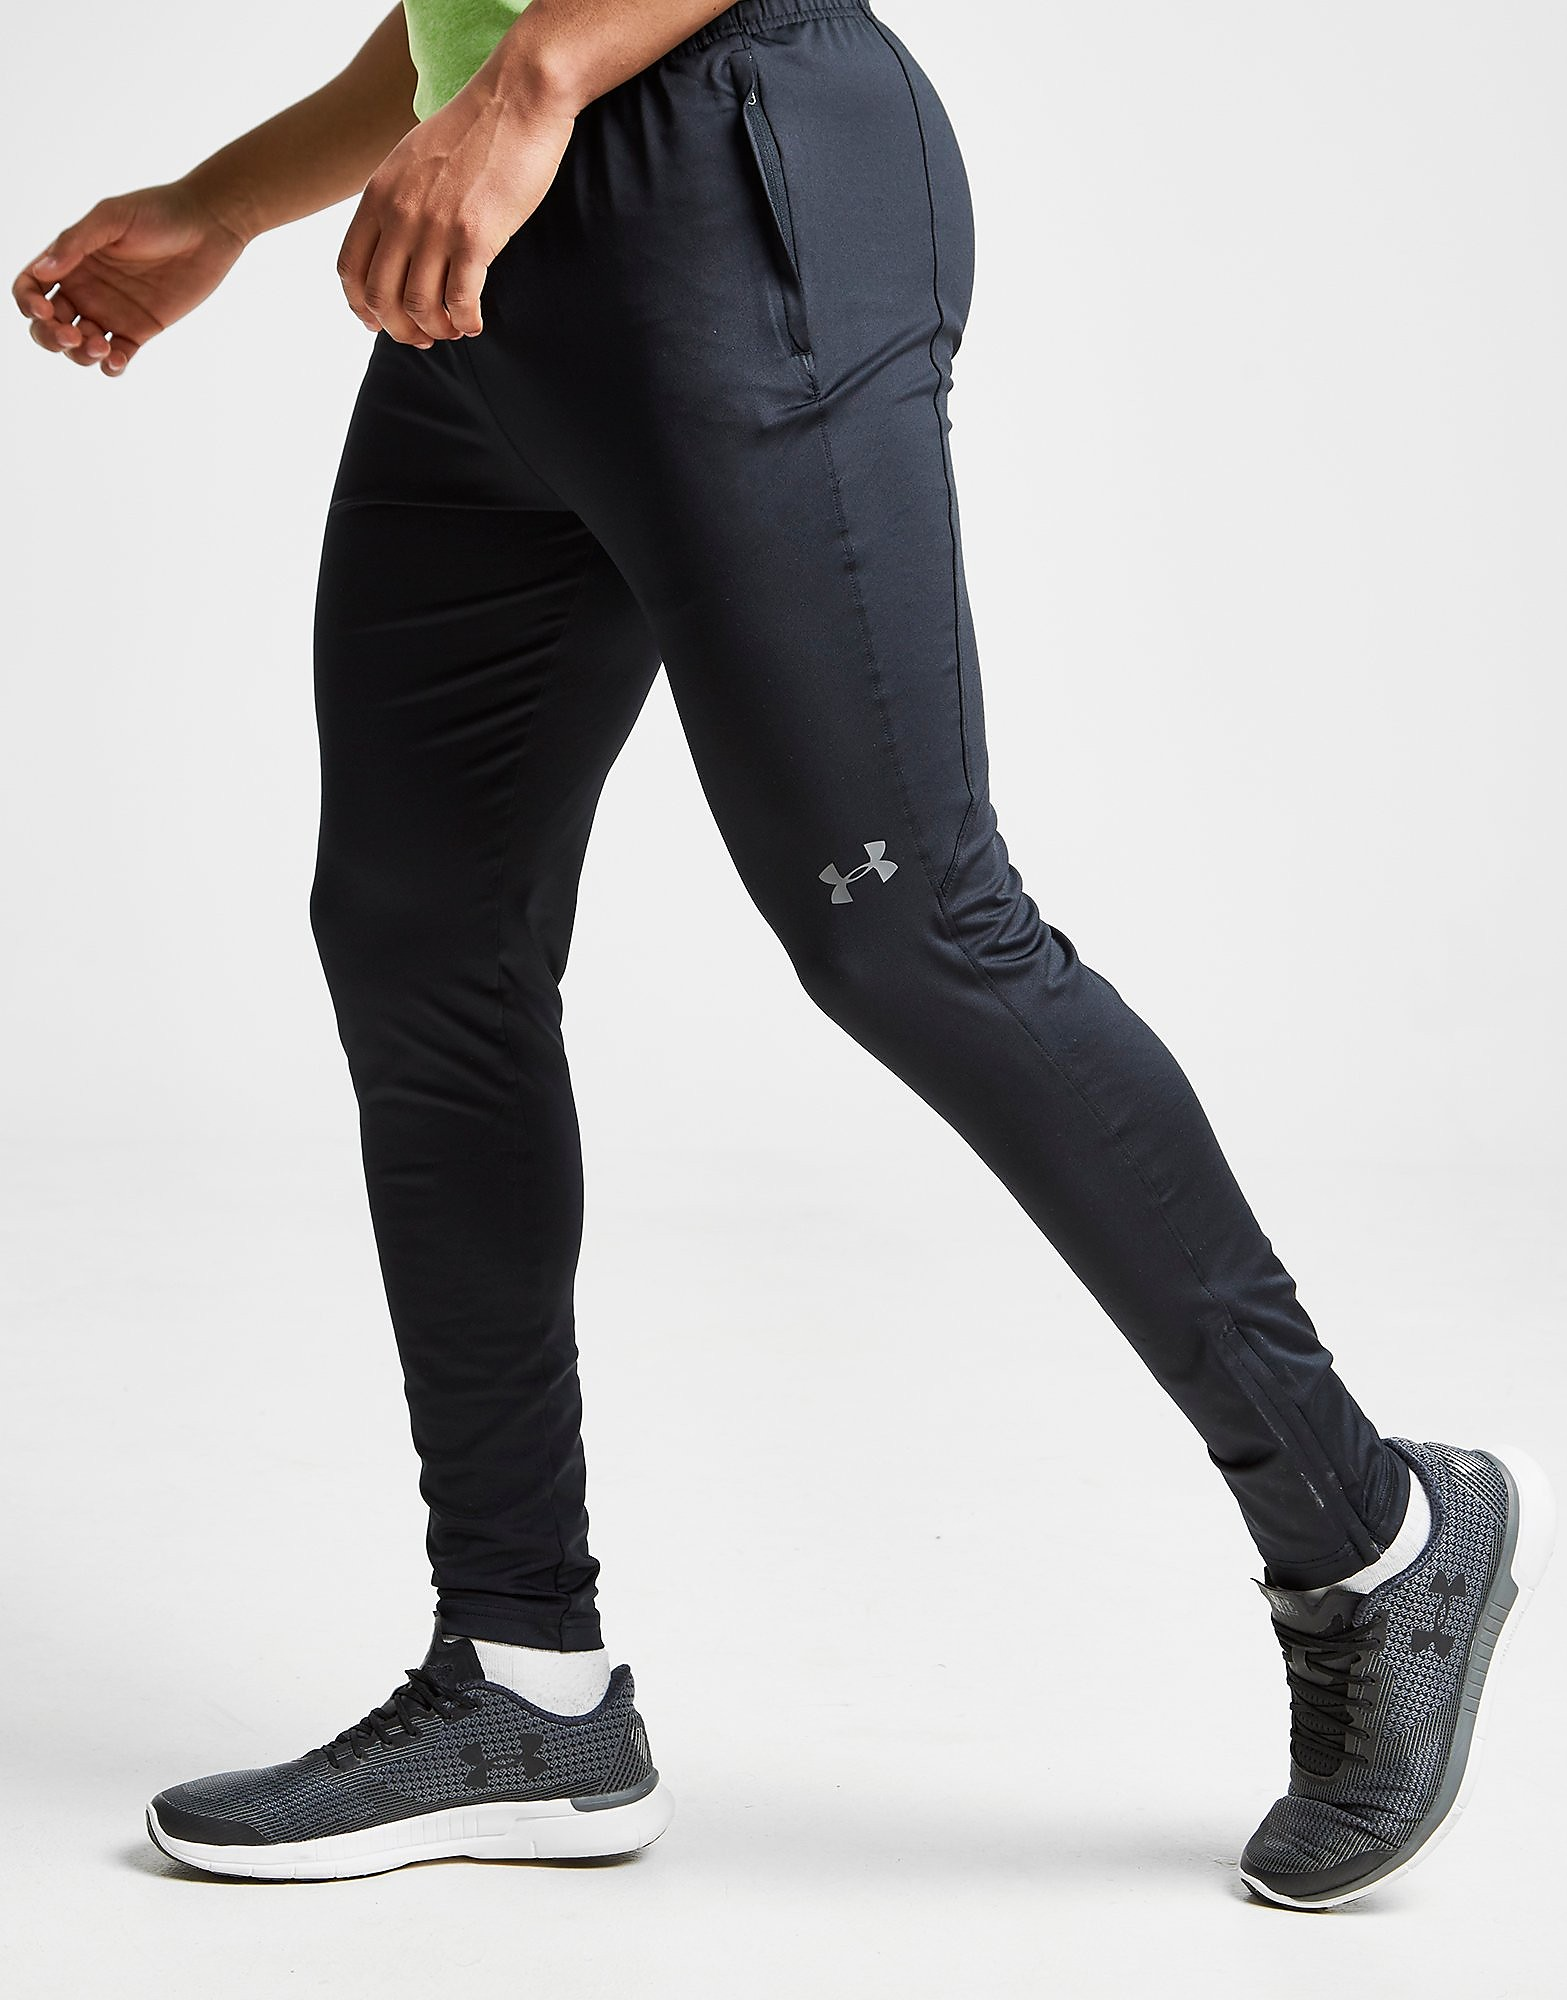 Under Armour Challenger 2 Pants